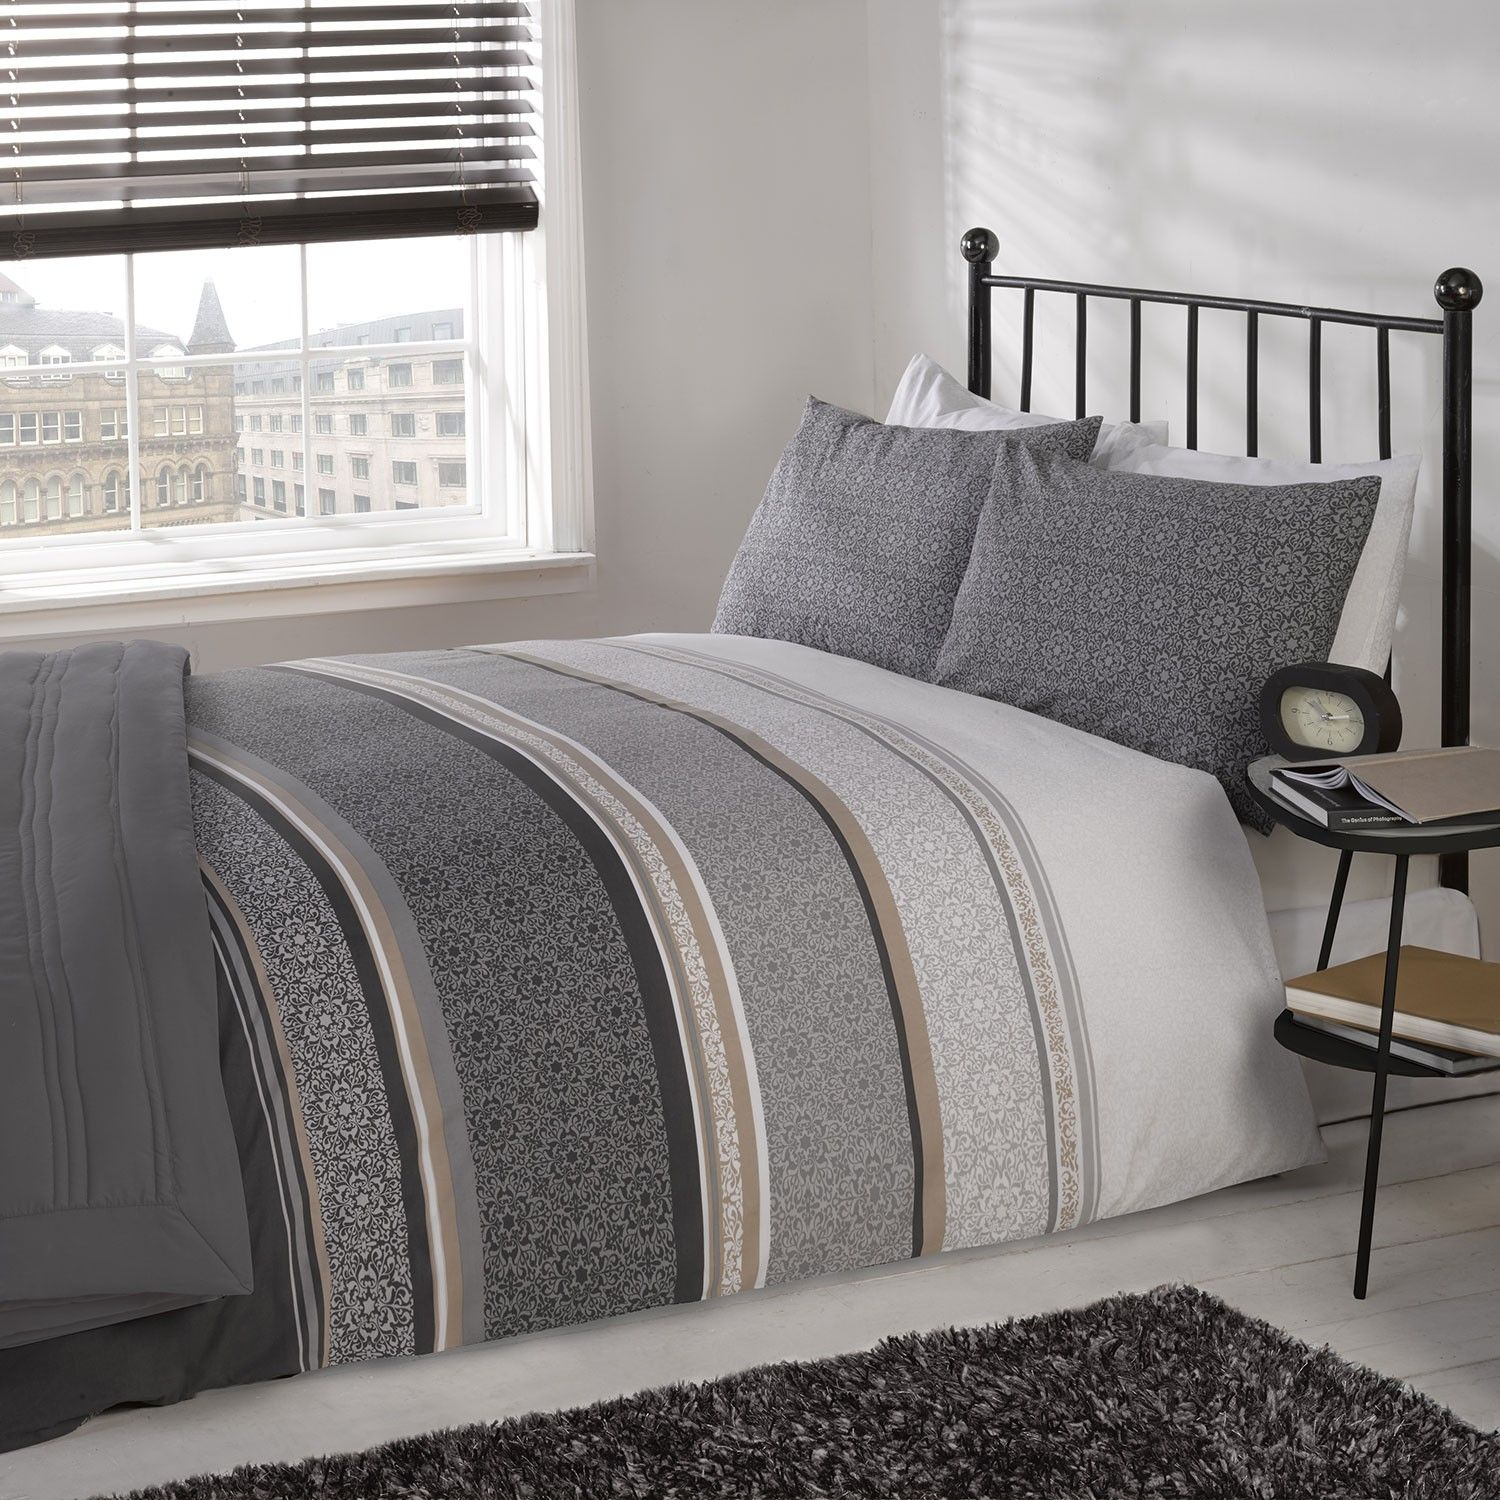 Ashford Silver Luxury Duvet Set Julian Charles From Cotton Bedding Setsluxury Sets When Designi